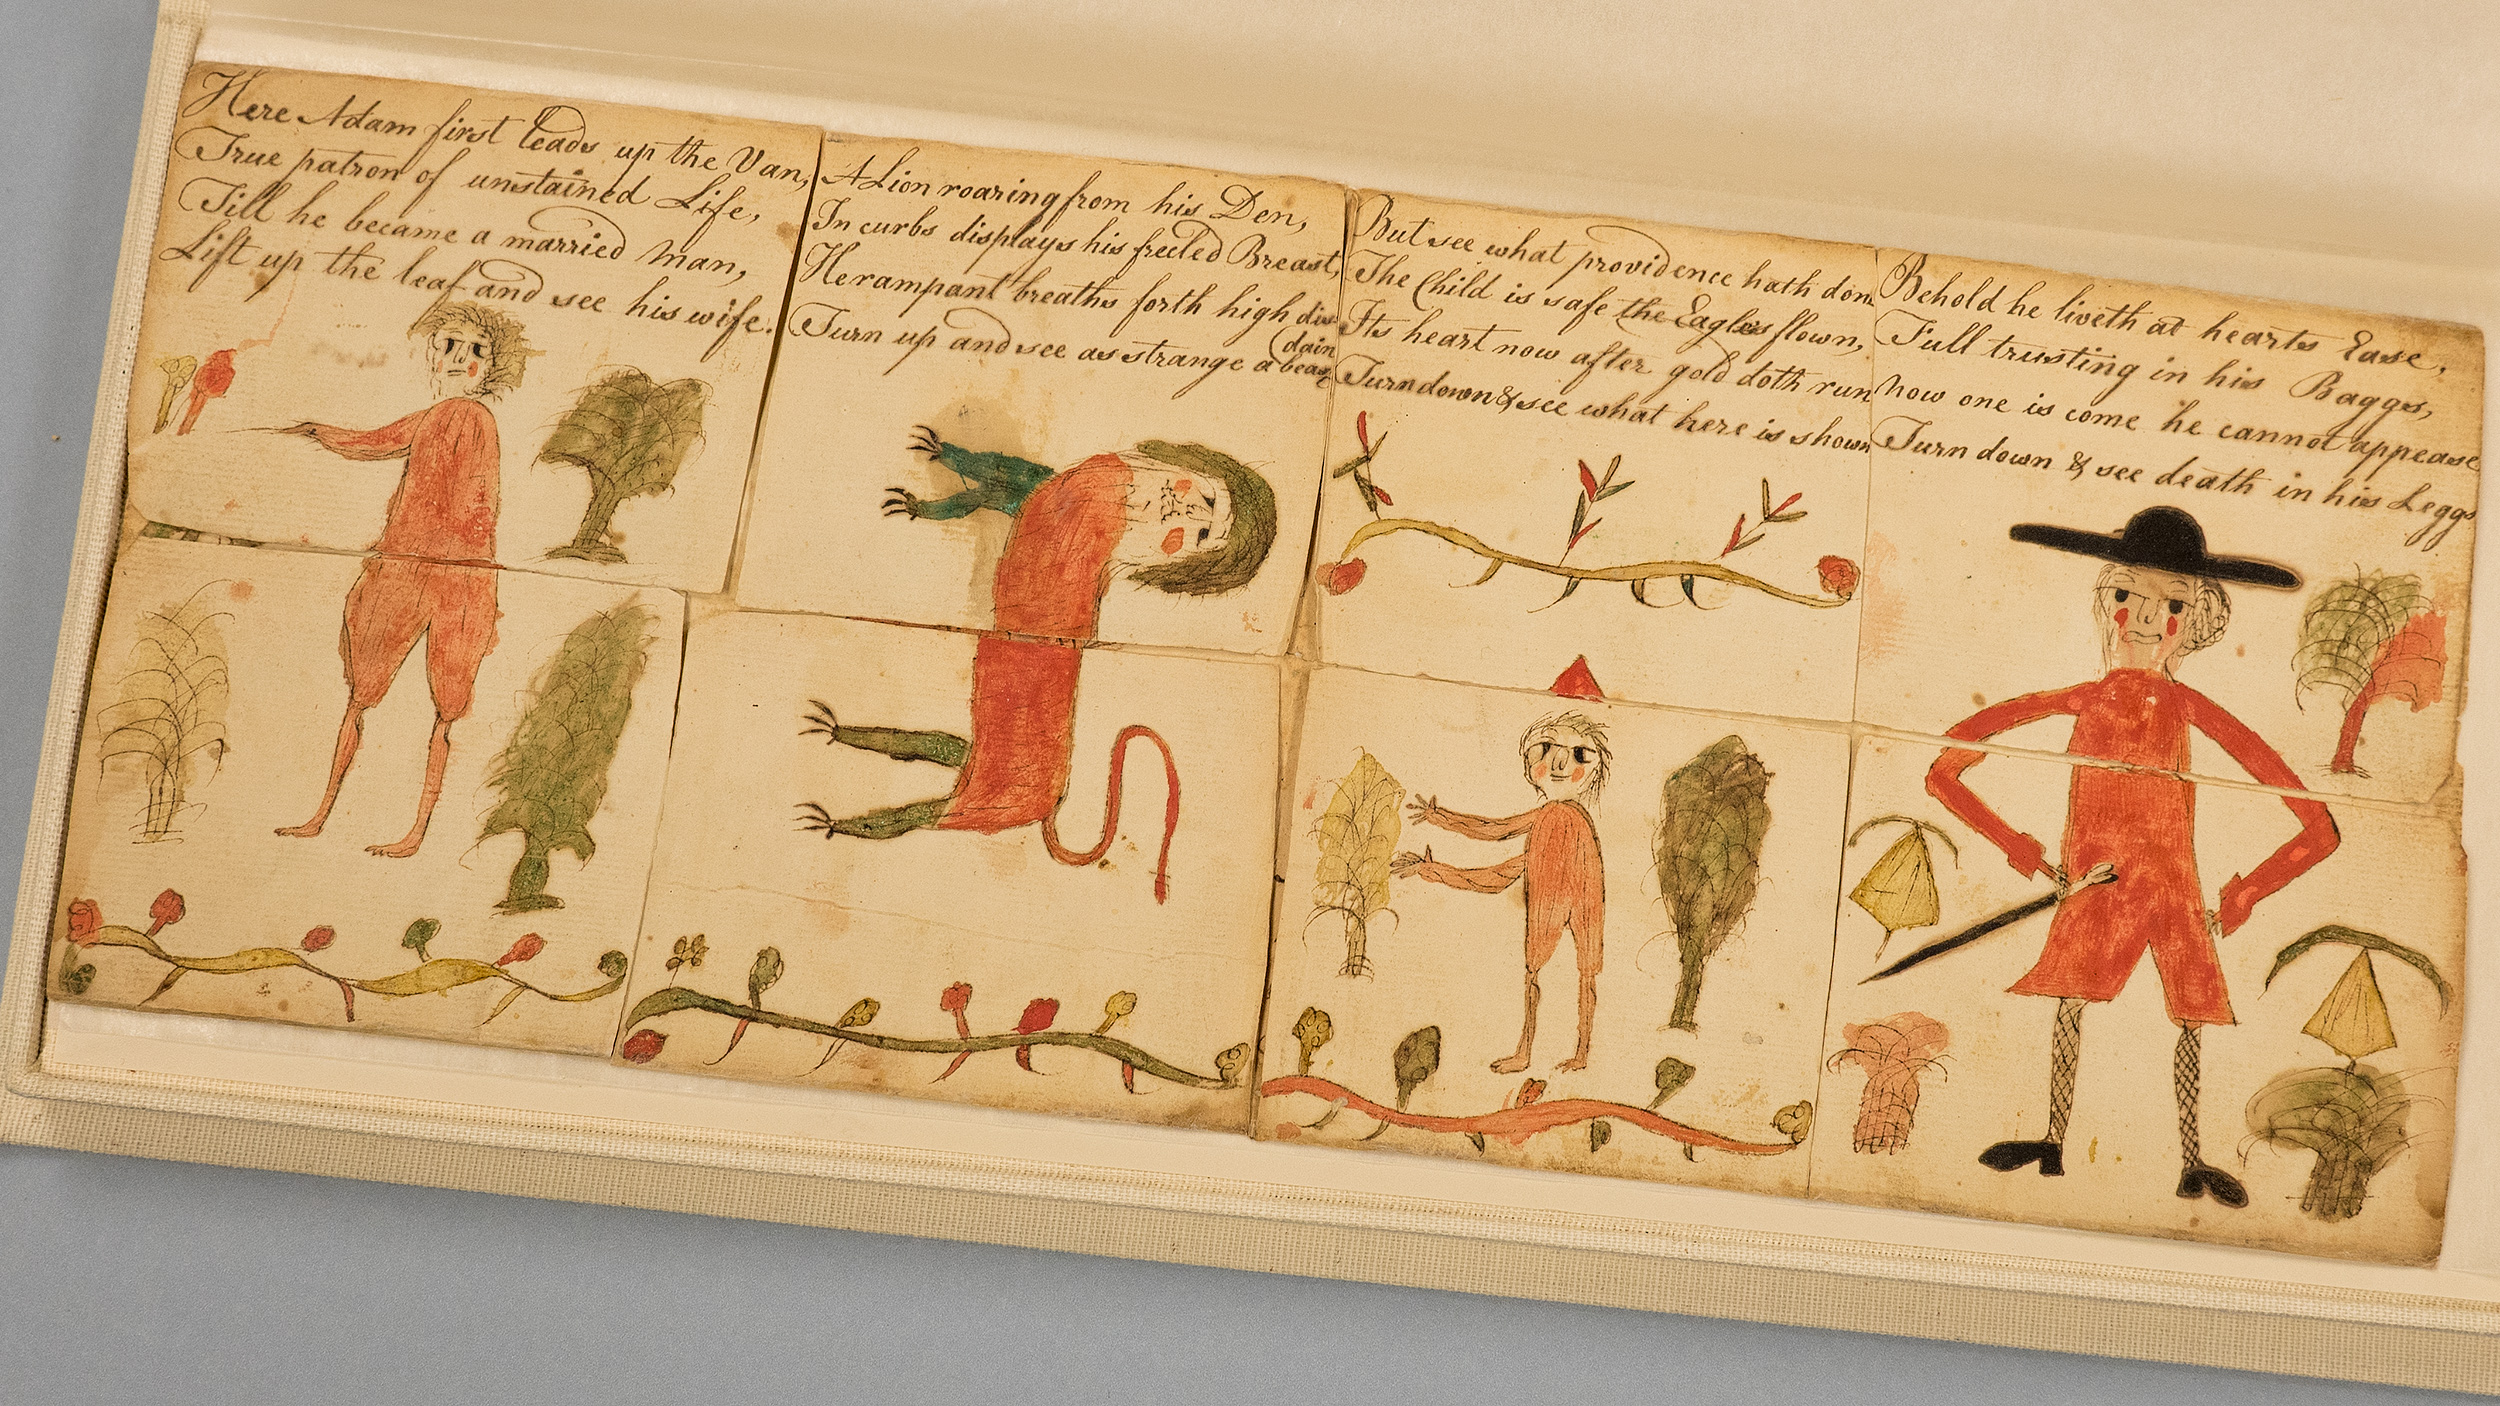 a manuscript with writing across the top of four panels, with drawings below of people and plants in mostly red, green and yellow